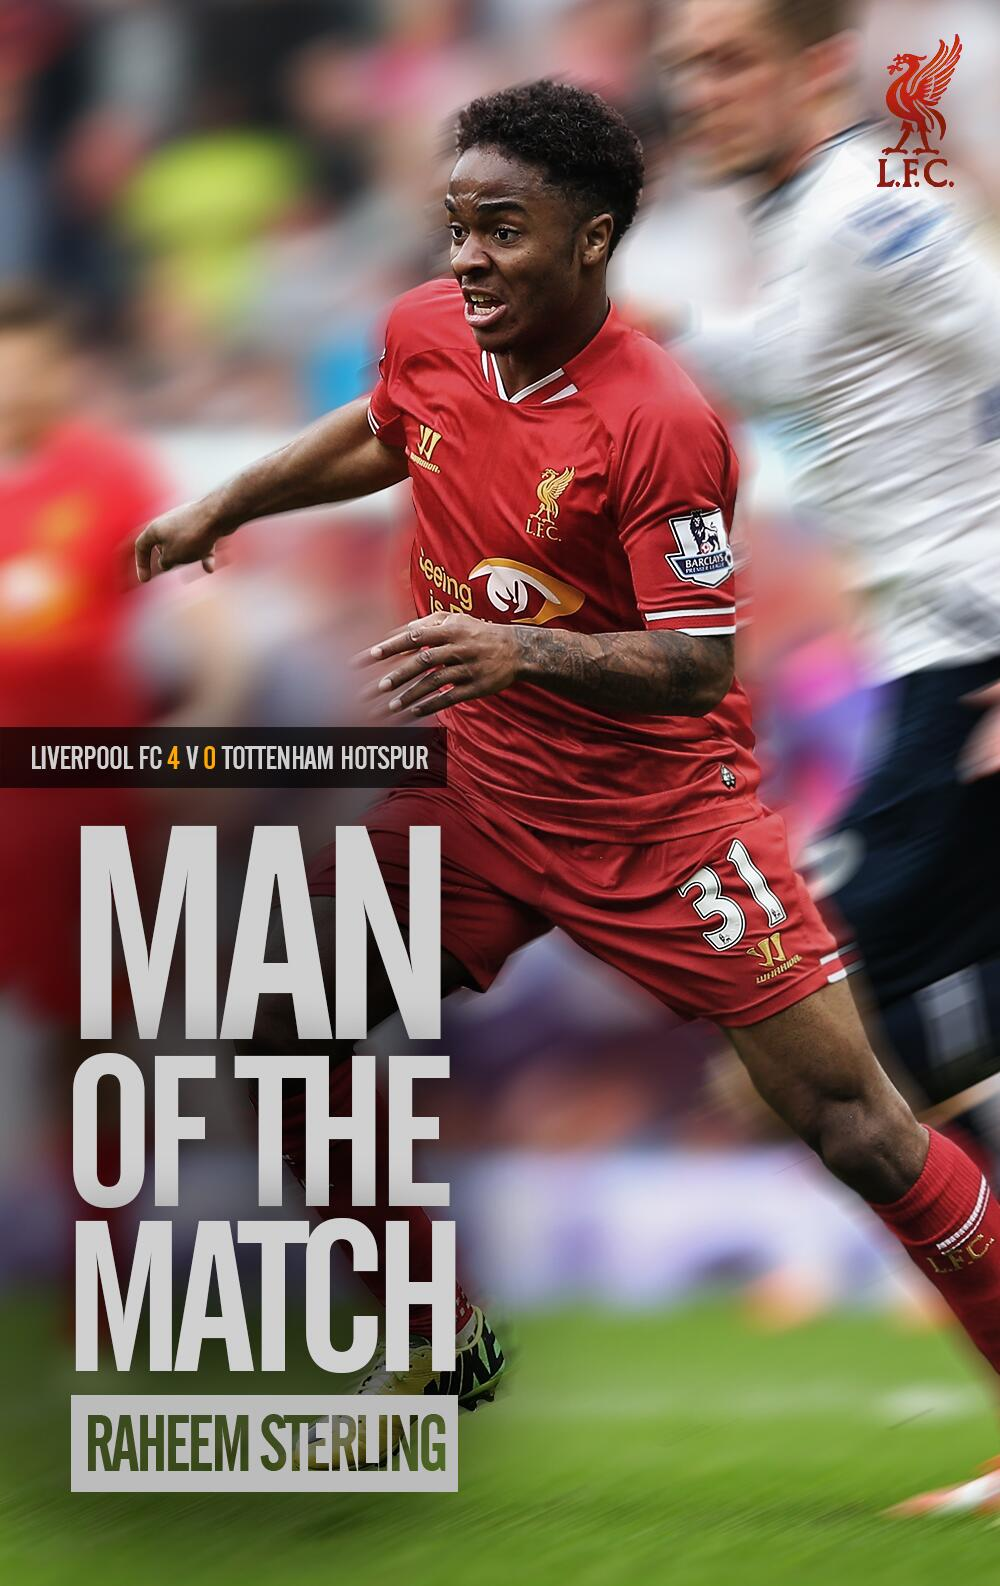 Congratulations to @sterling31 who you voted as #LFC's Man of the Match for his outstanding display against Spurs http://t.co/dNph3bLfbl